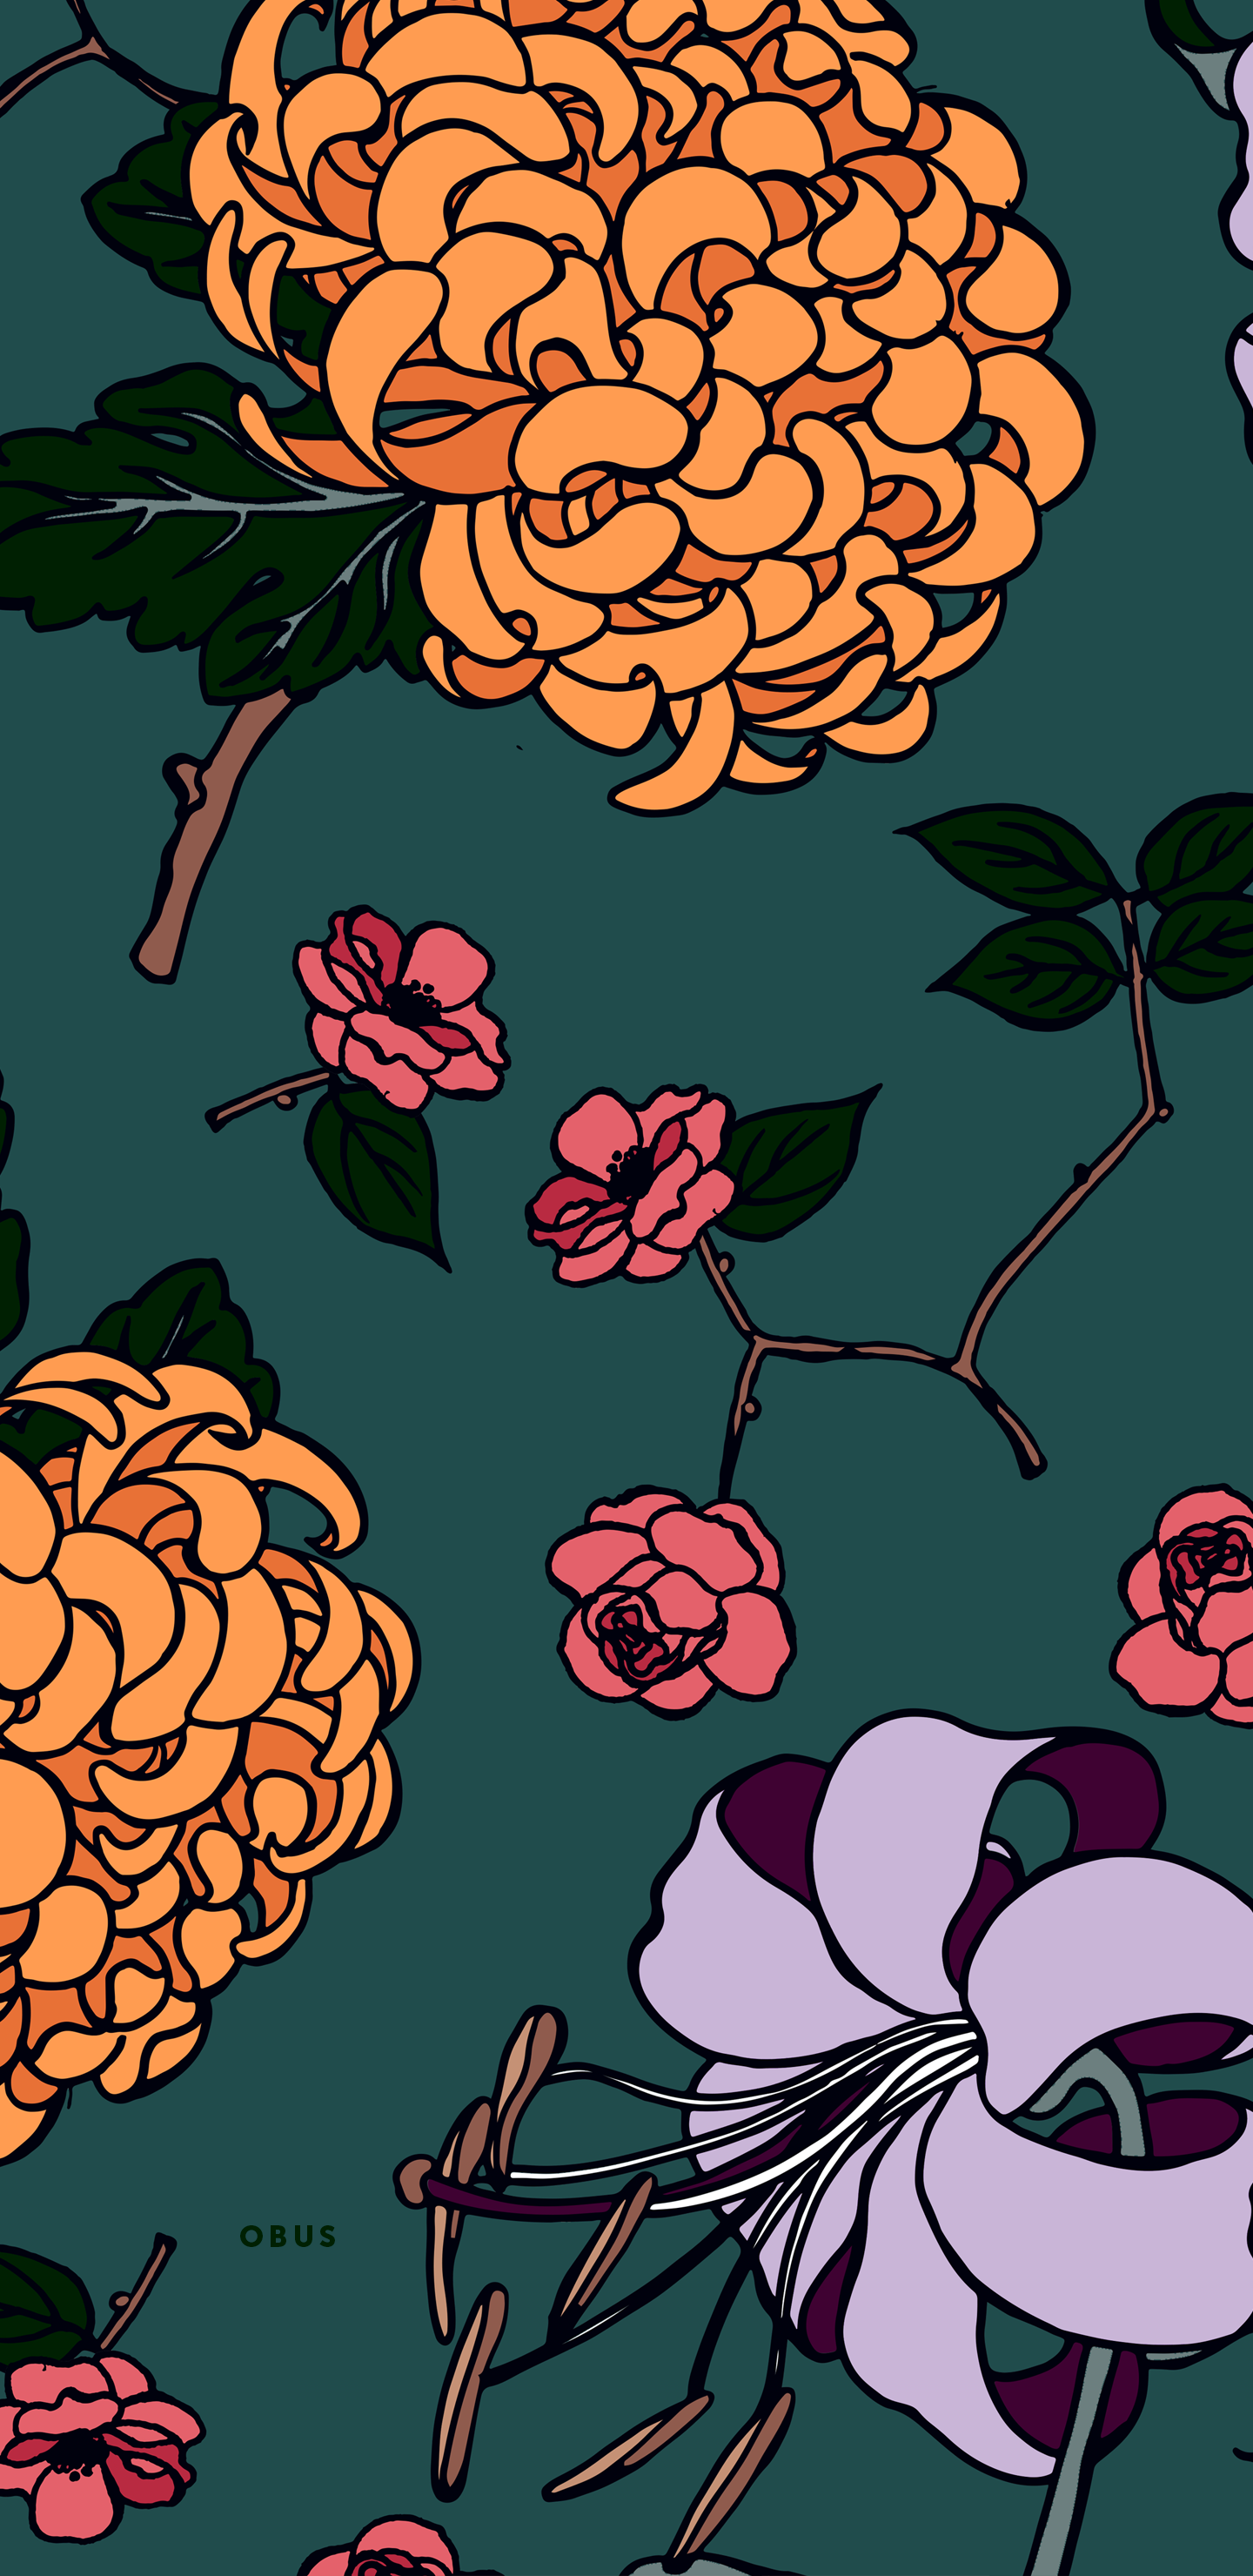 Fun Stuff Obus Wallpapers For Your Favourite Device